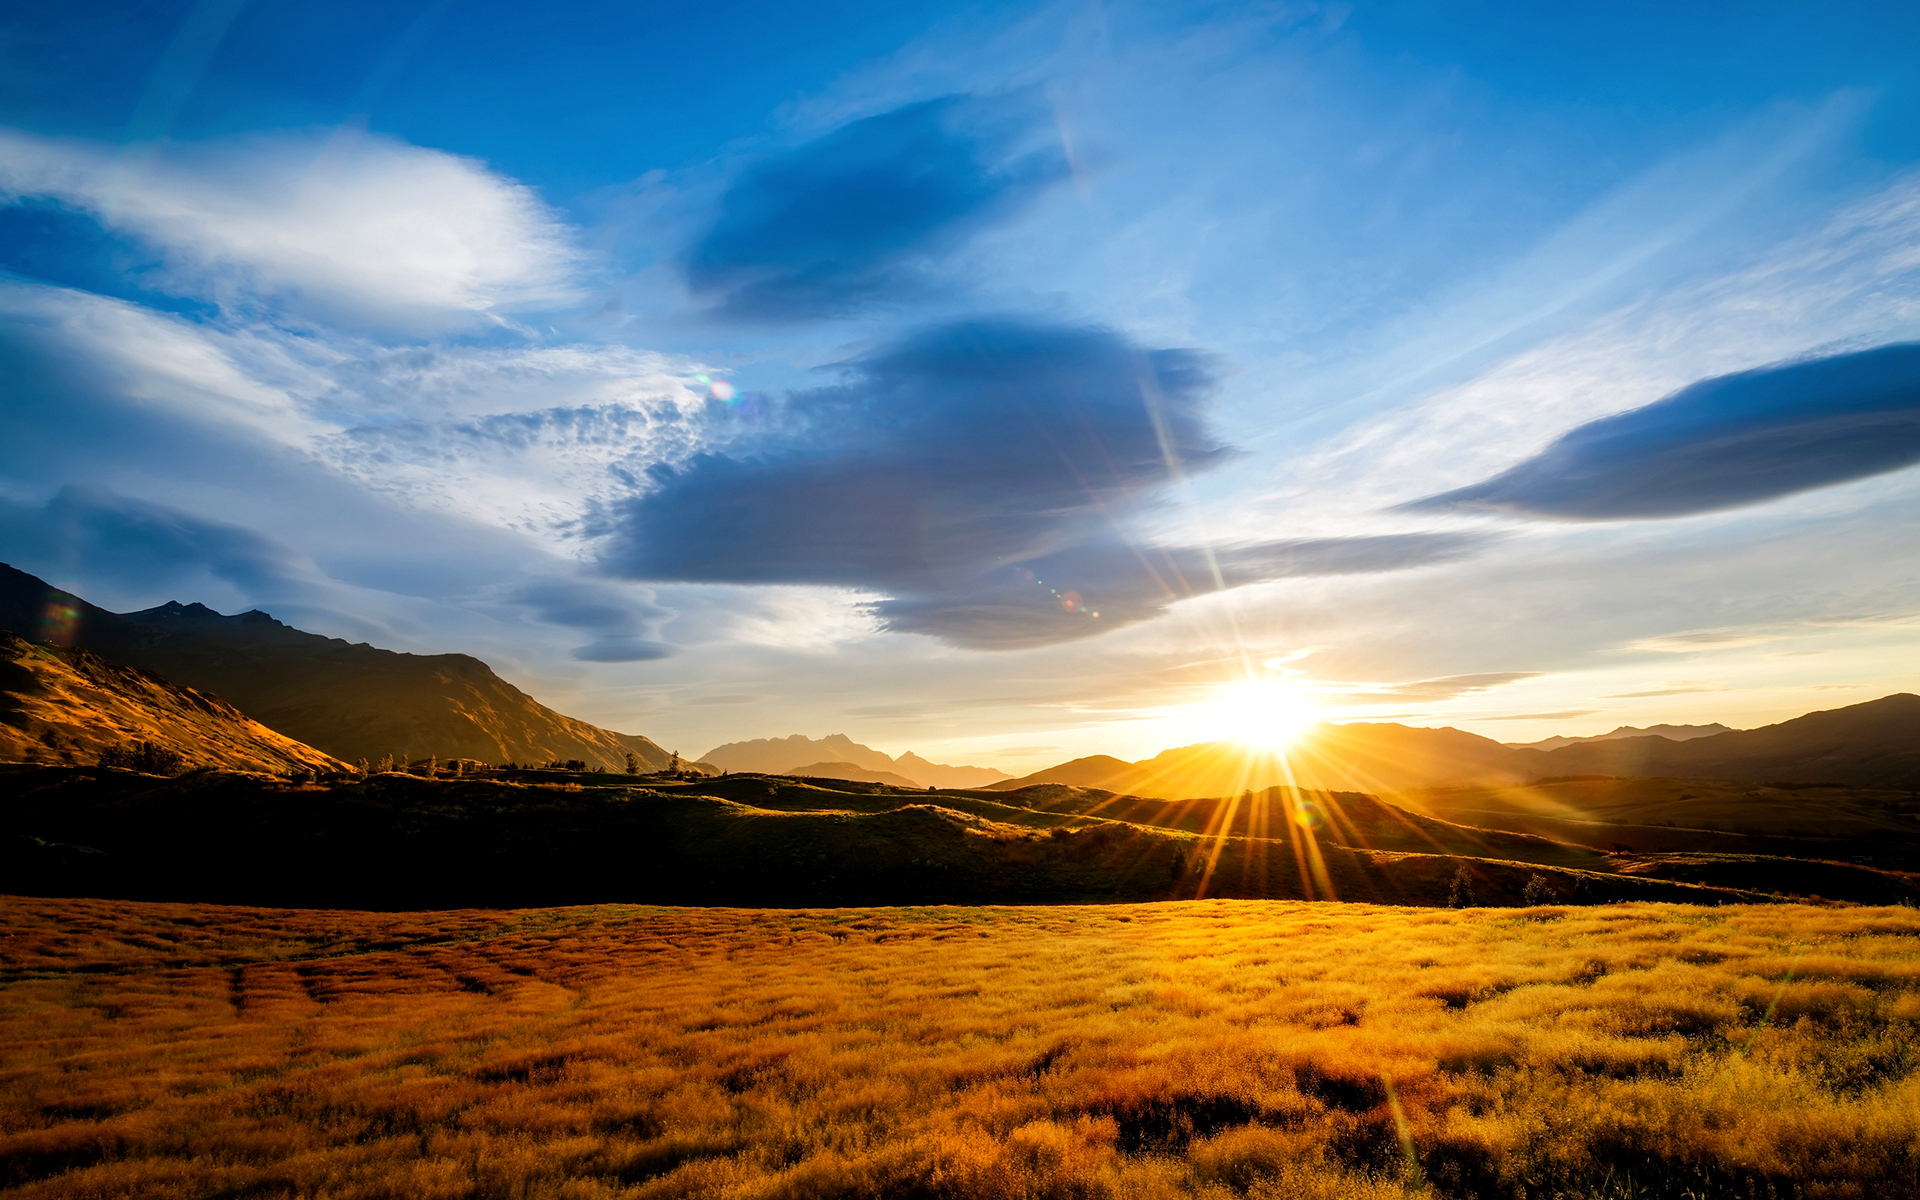 sunrise pictures free - HD2880×2016